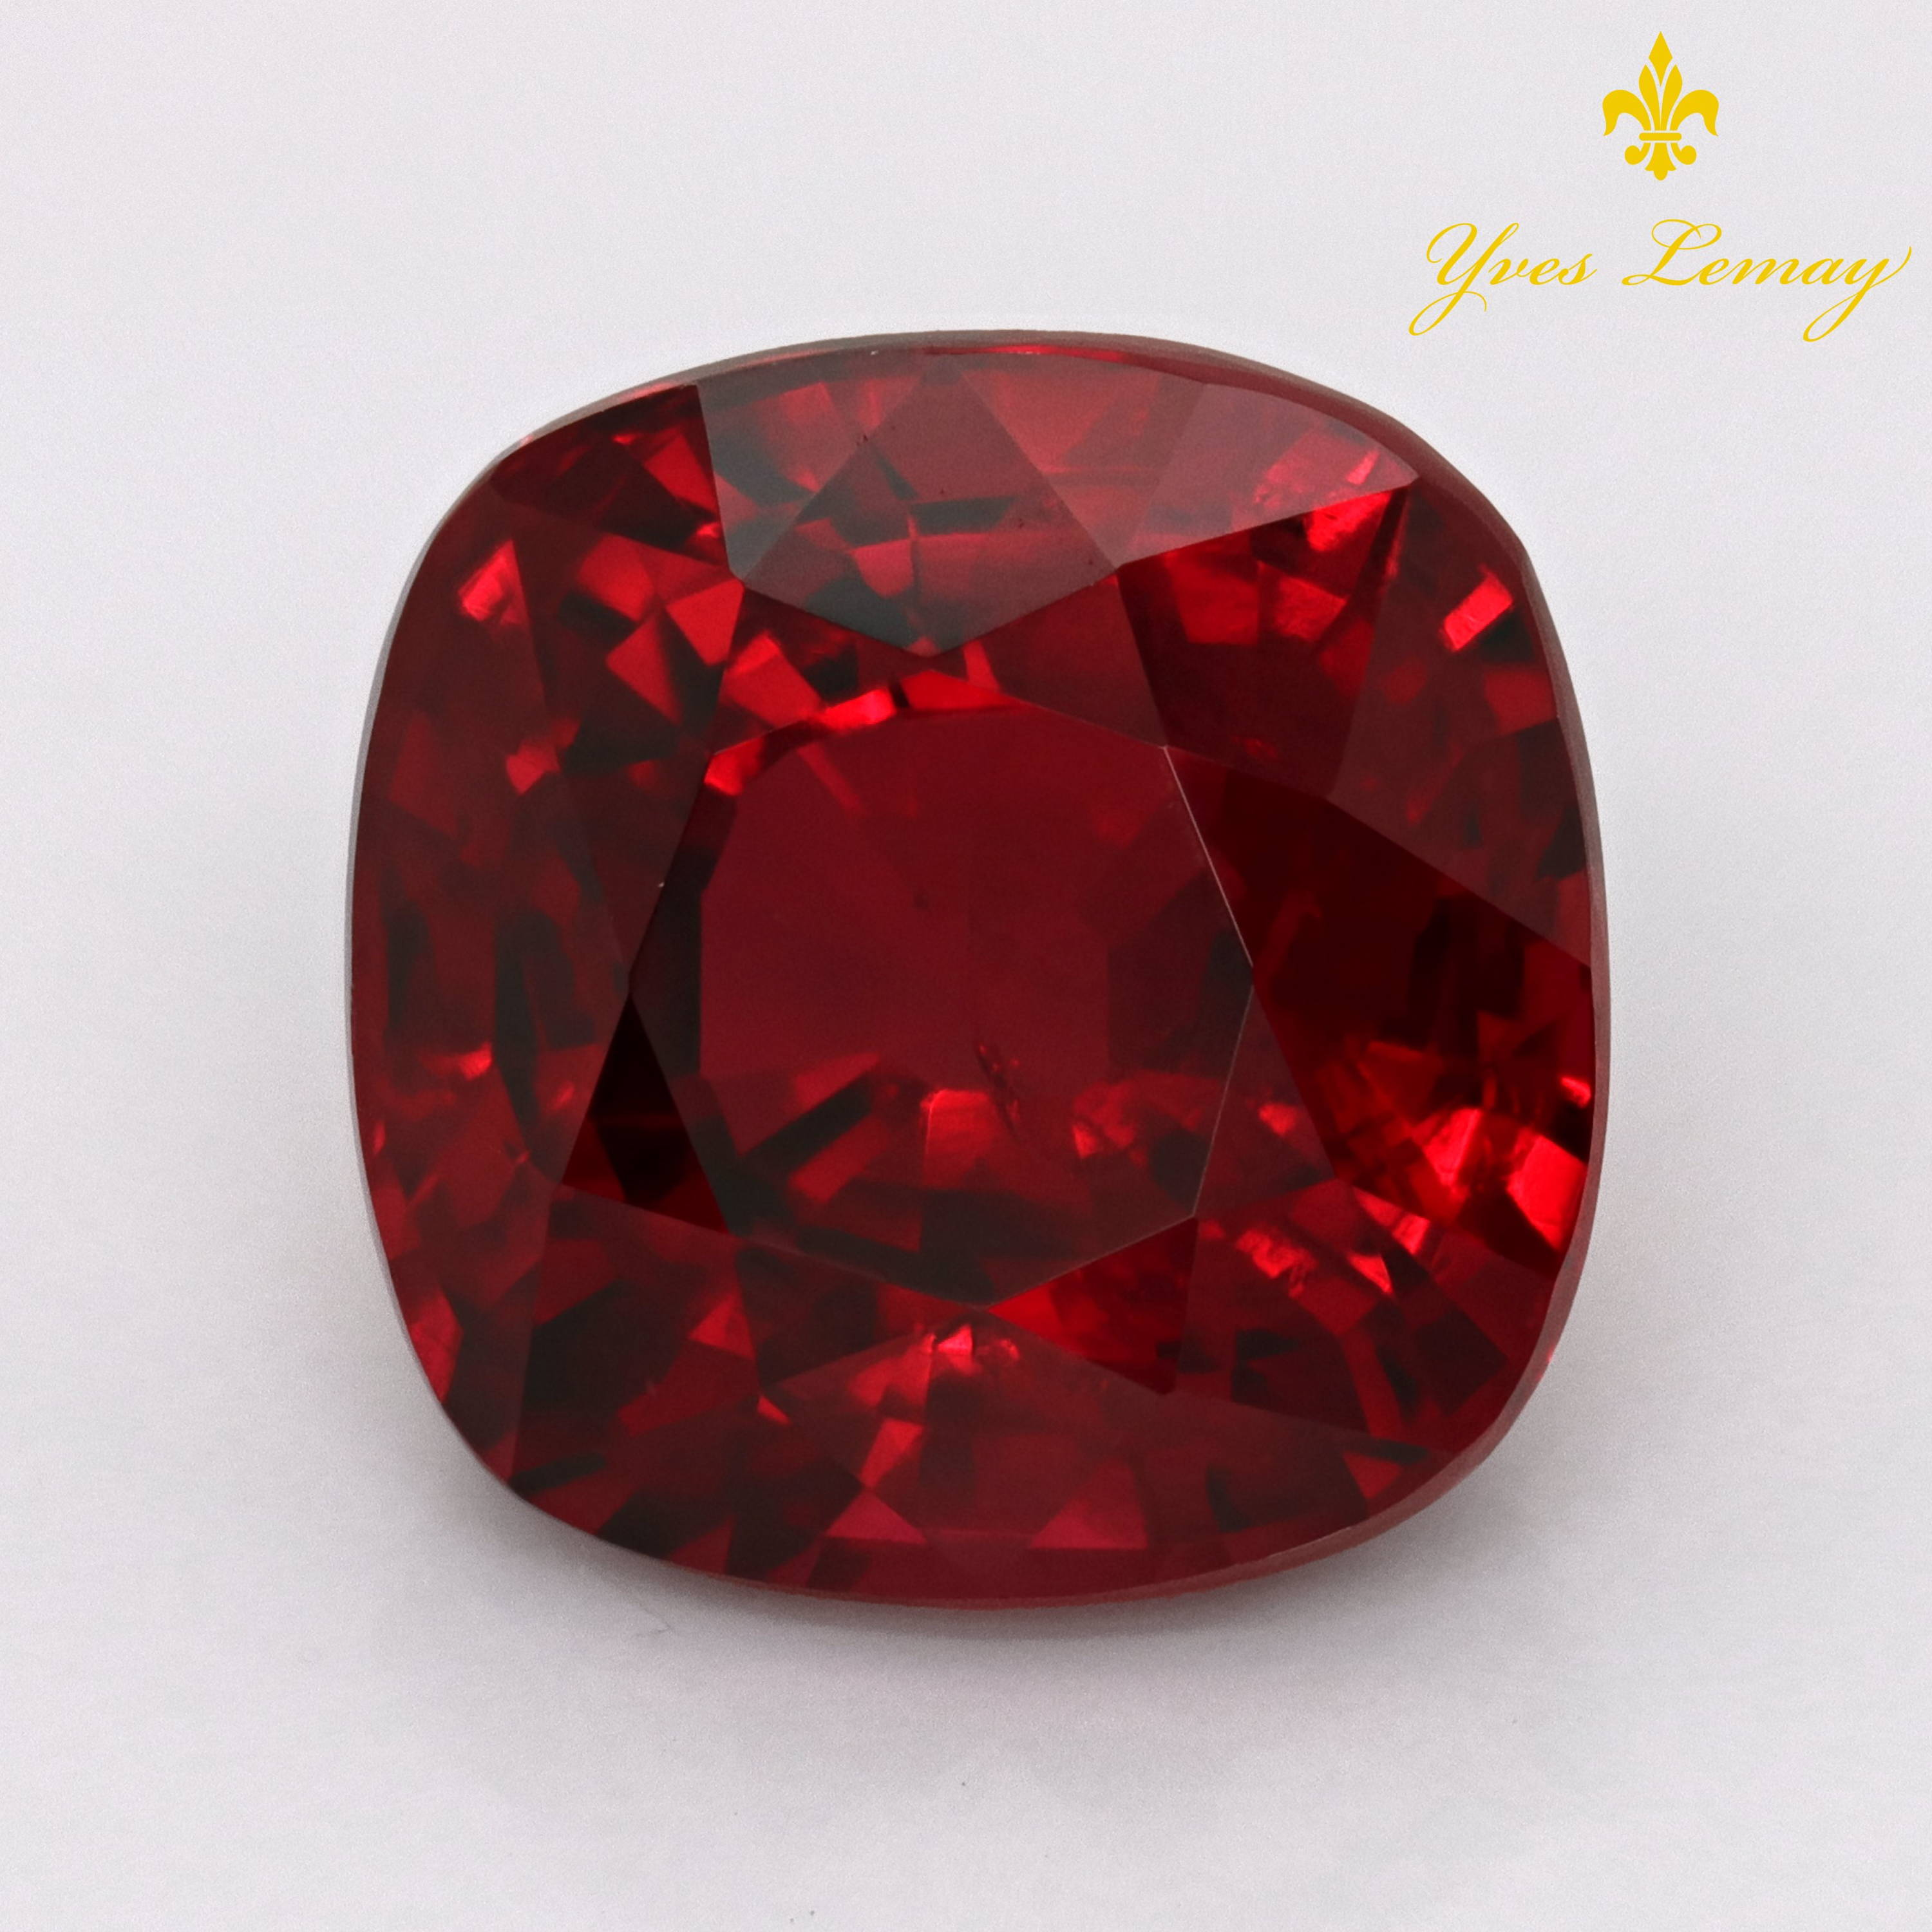 Bangkok Gemstones and Jewelry  Photography and Videography Services